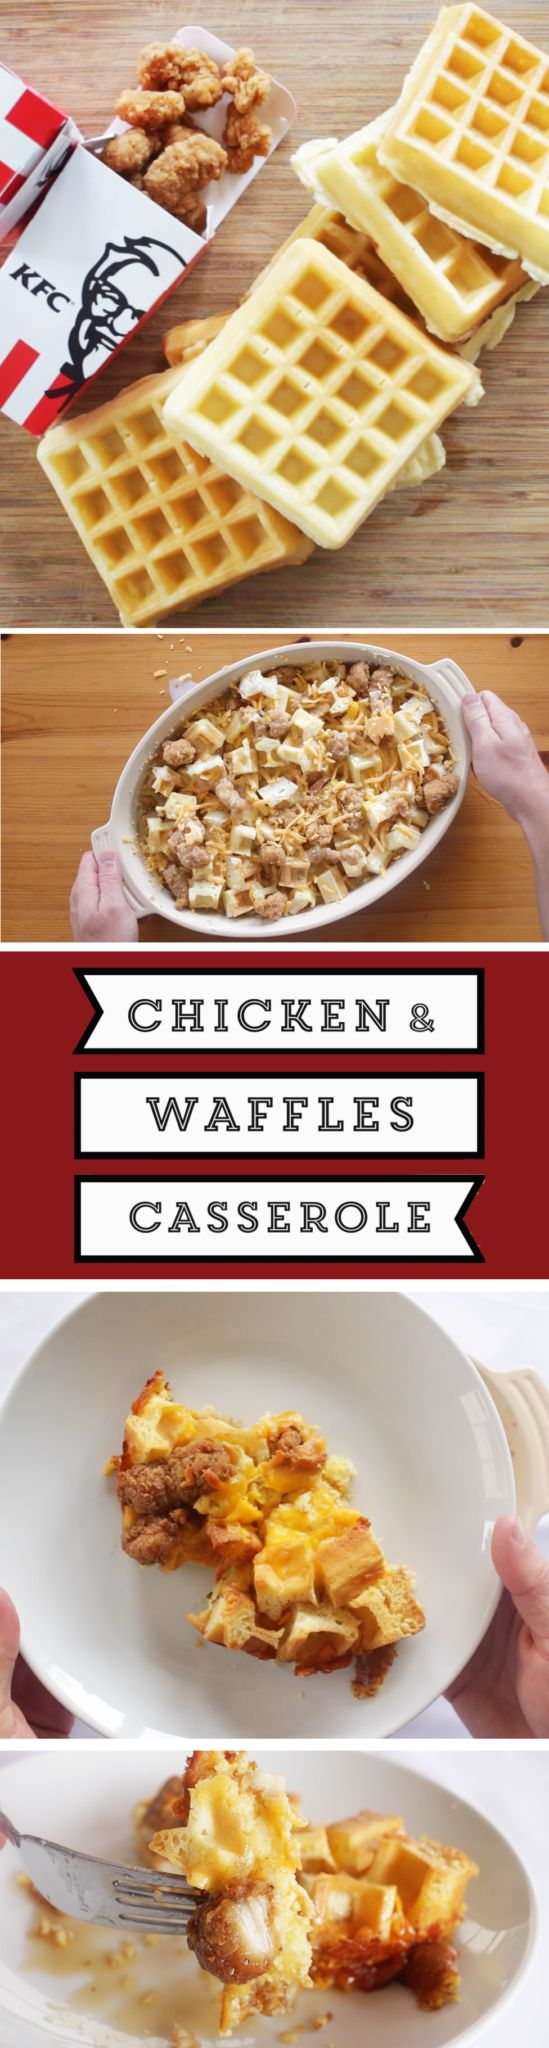 17 best ideas about chicken and waffles on pinterest waffle games brunch party foods and. Black Bedroom Furniture Sets. Home Design Ideas